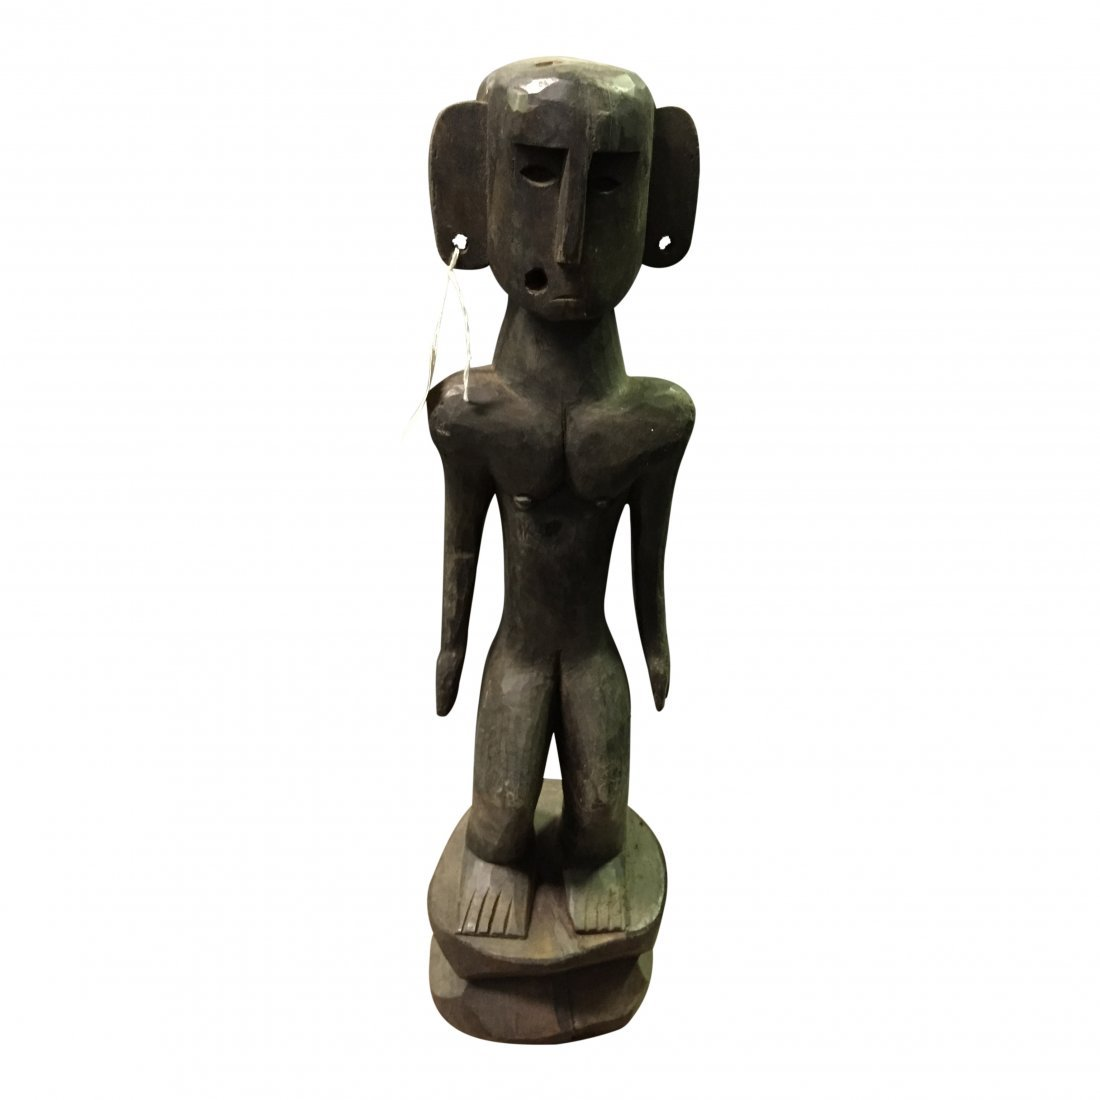 Bulul standing statue